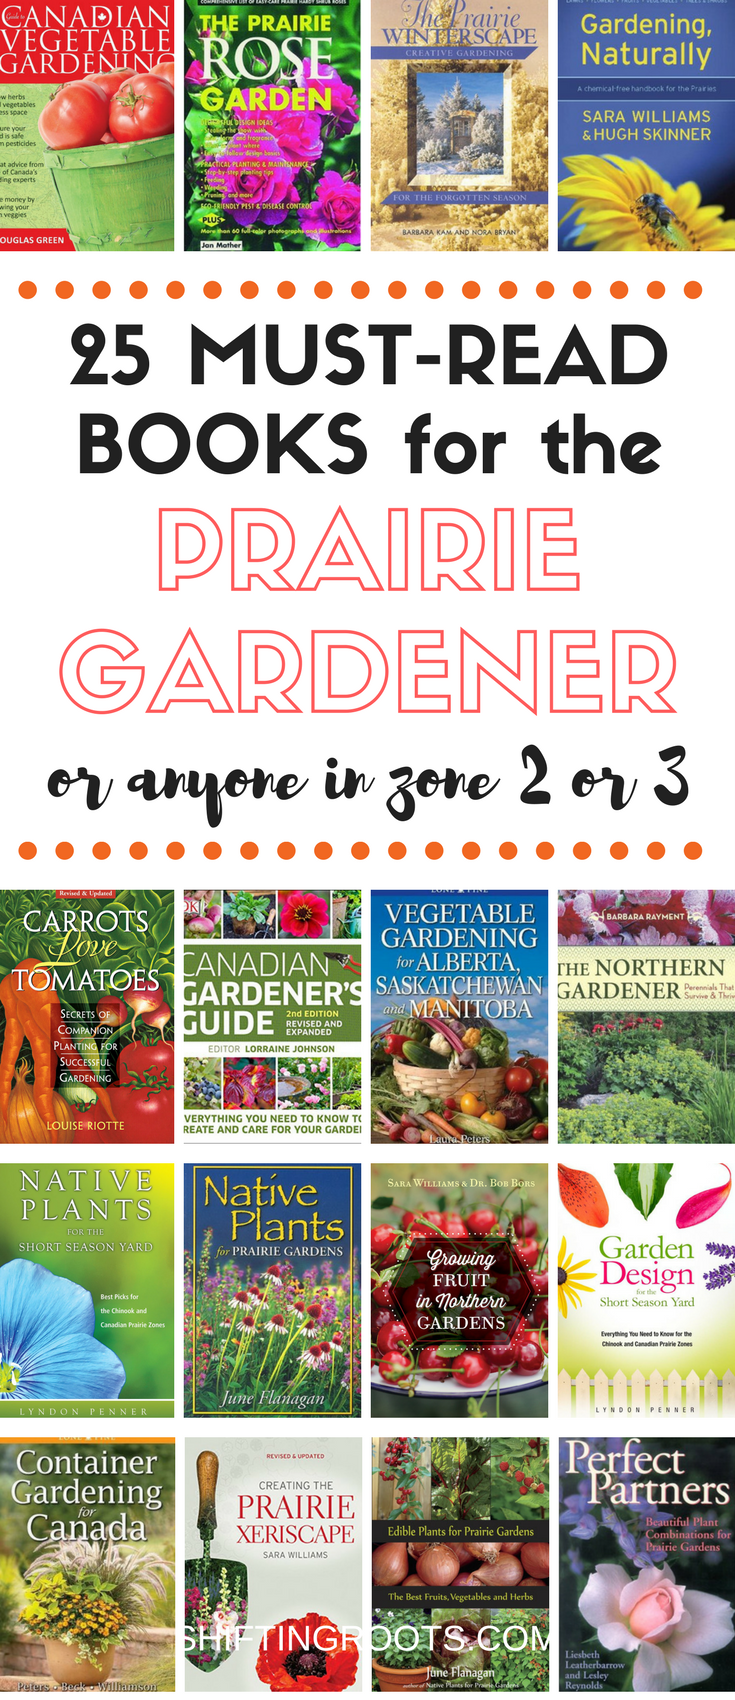 Finally, gardening books written just for the Prairies!  If you're a gardener in Alberta, Saskatchewan, or Manitoba, (or live in USDA hardiness zones 2 or 3) you must read these books!  Advice on vegetable and flower gardening, native plants, companion planting, landscaping, and so much more.